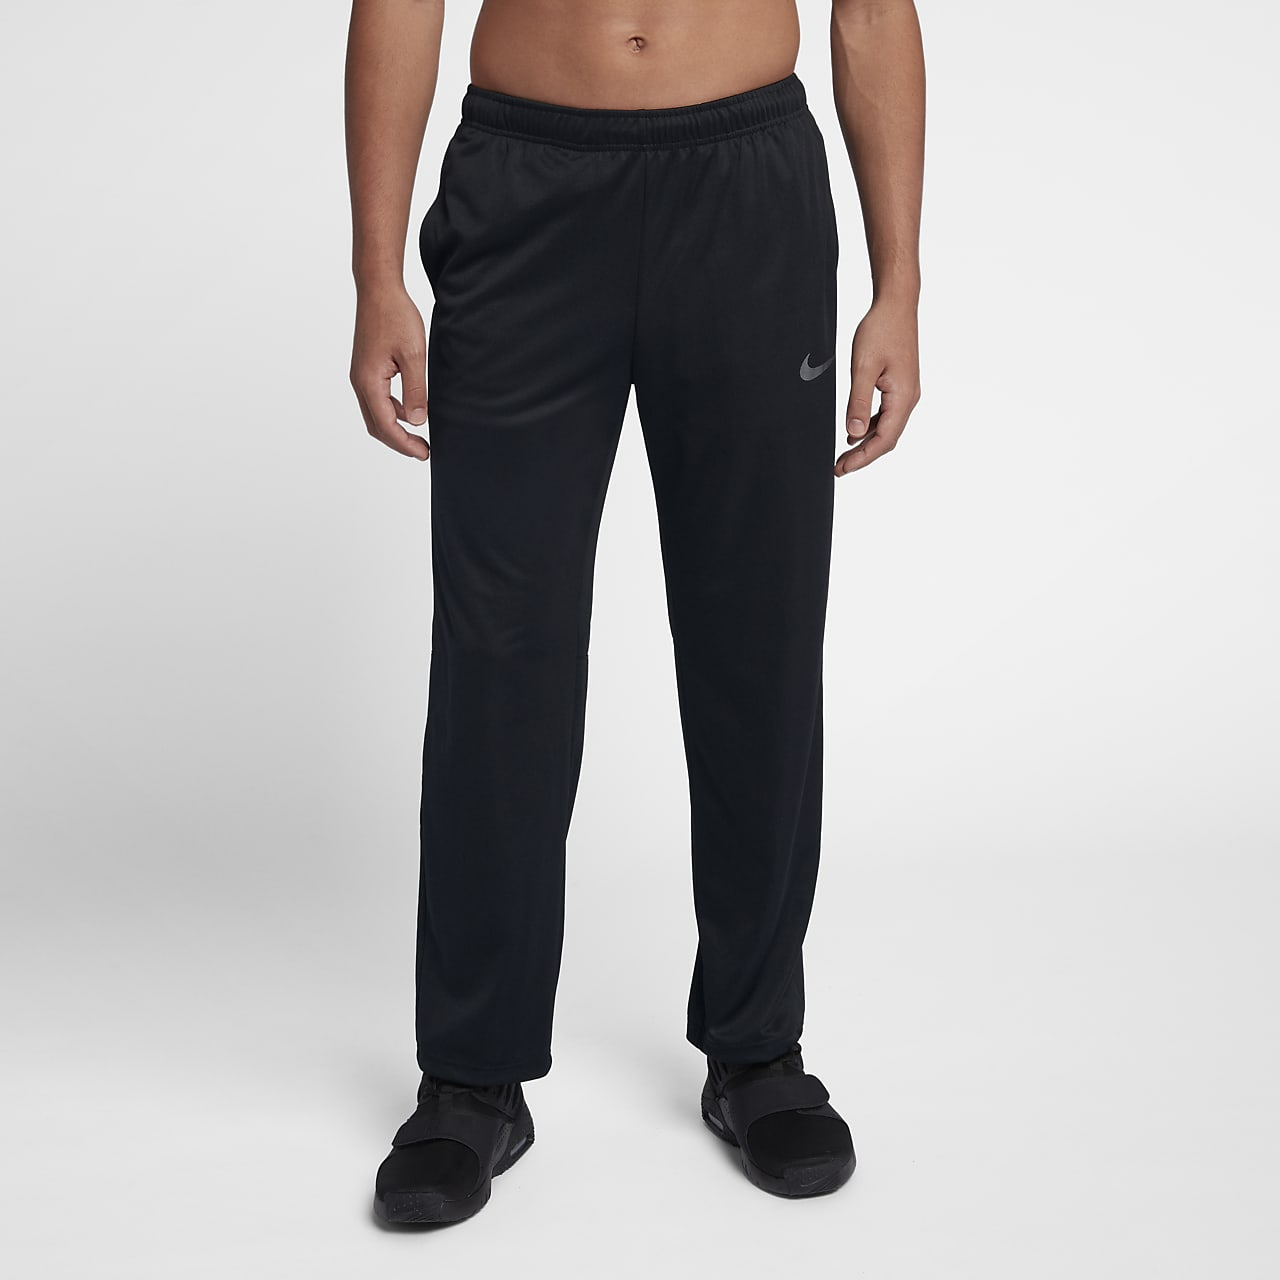 destilación vértice Viento  Purchase > nike dri fit men's therma training pants, Up to 69% OFF